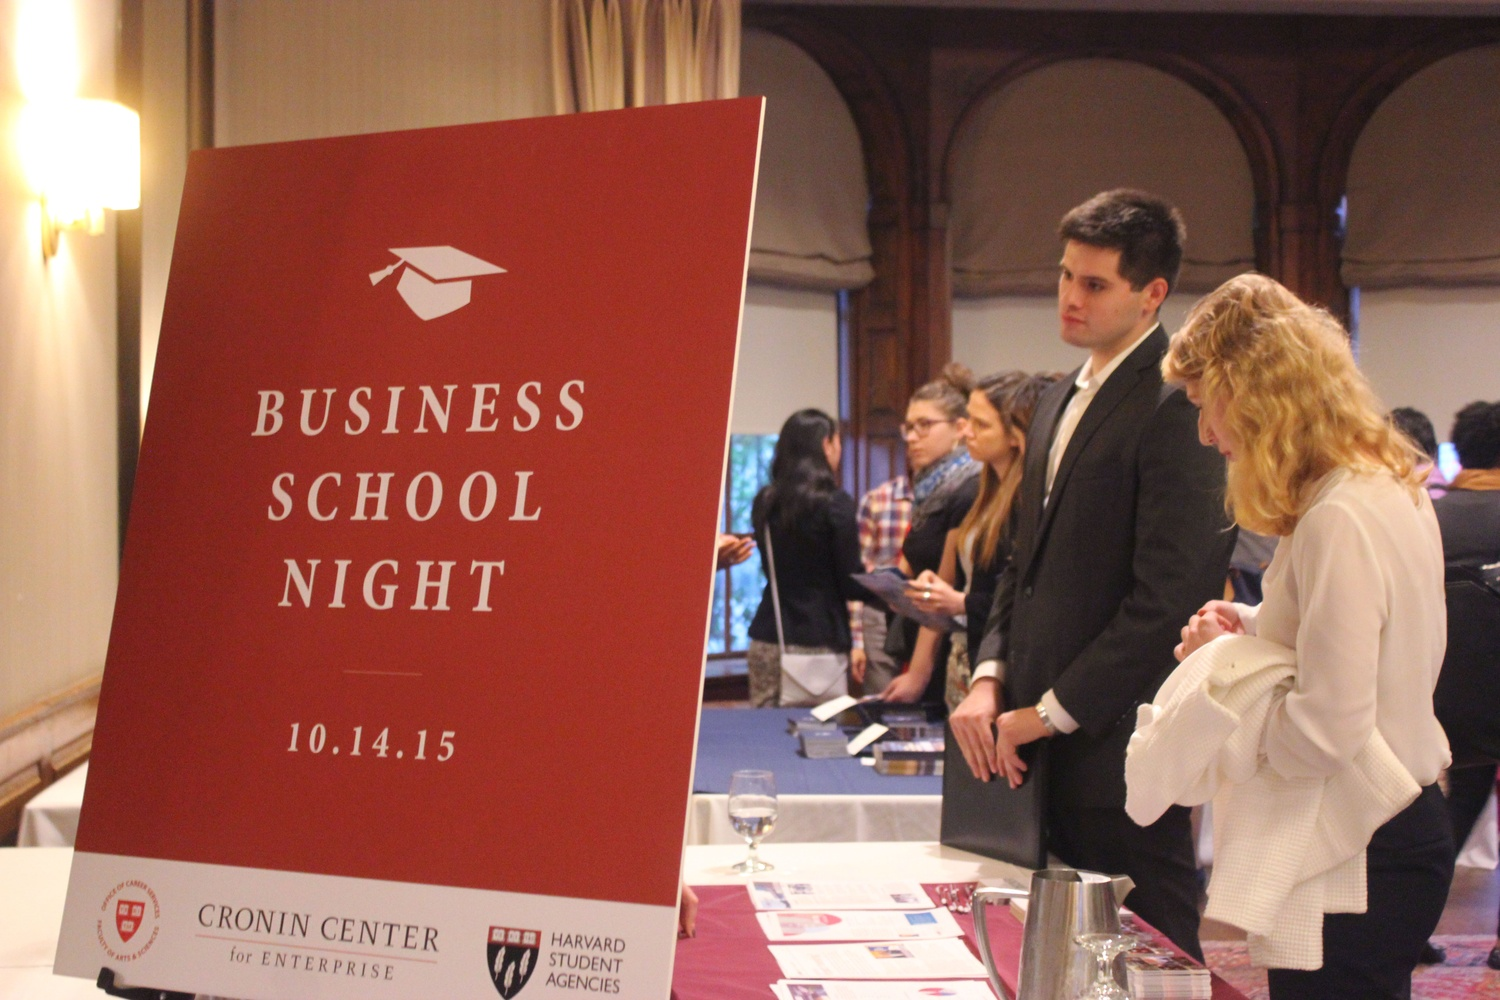 Business School Night